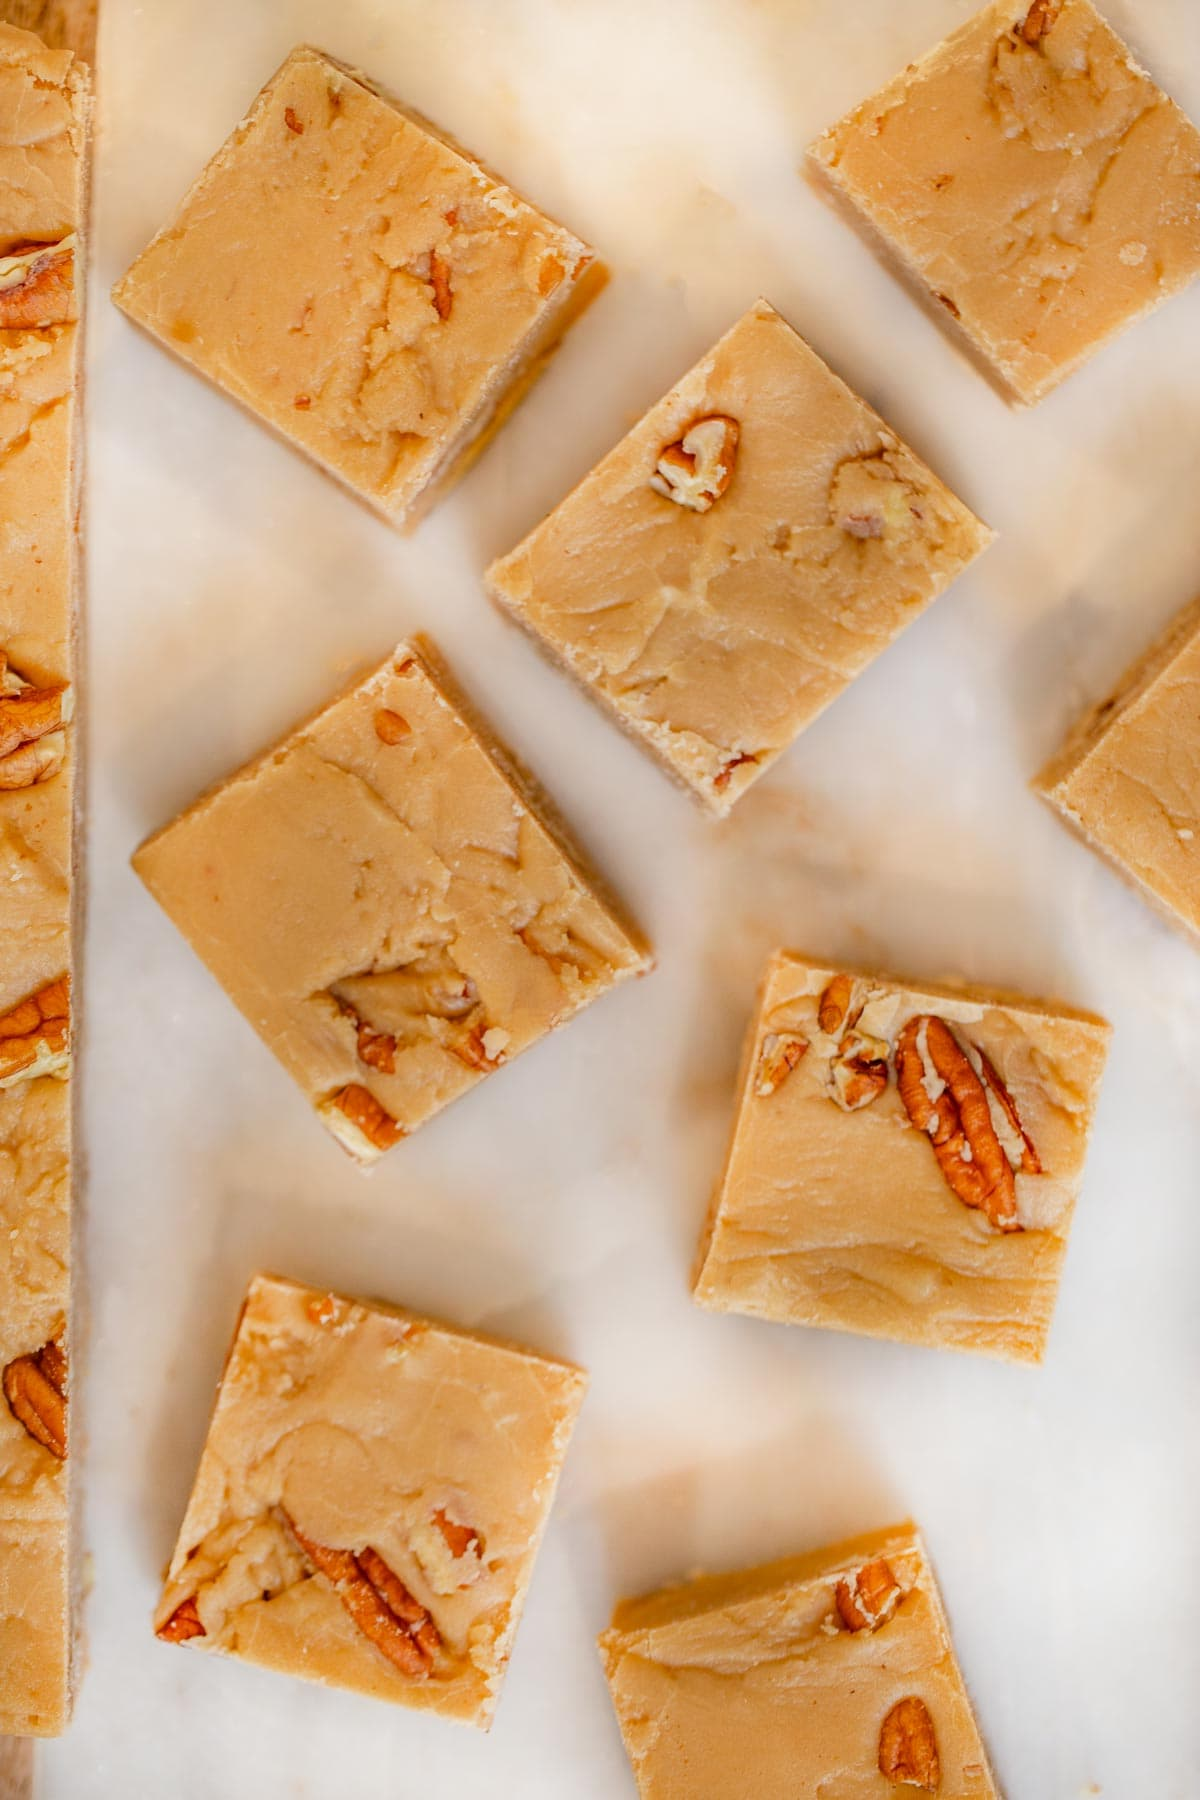 See's Bordeaux Pecan Fudge pieces on cutting board